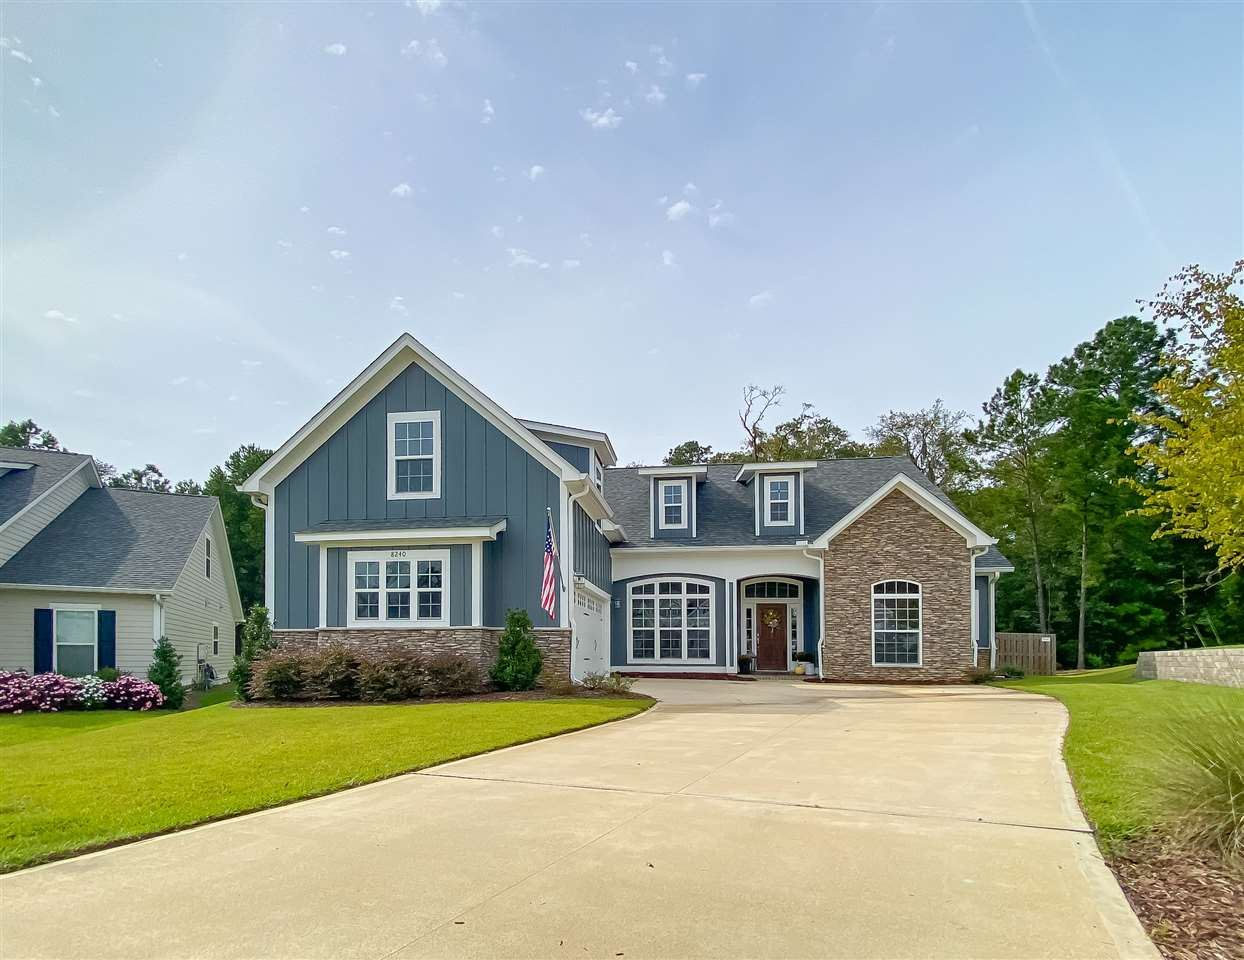 Photo of 8240 Dancing Shadow Court, TALLAHASSEE, FL 32312 (MLS # 324353)